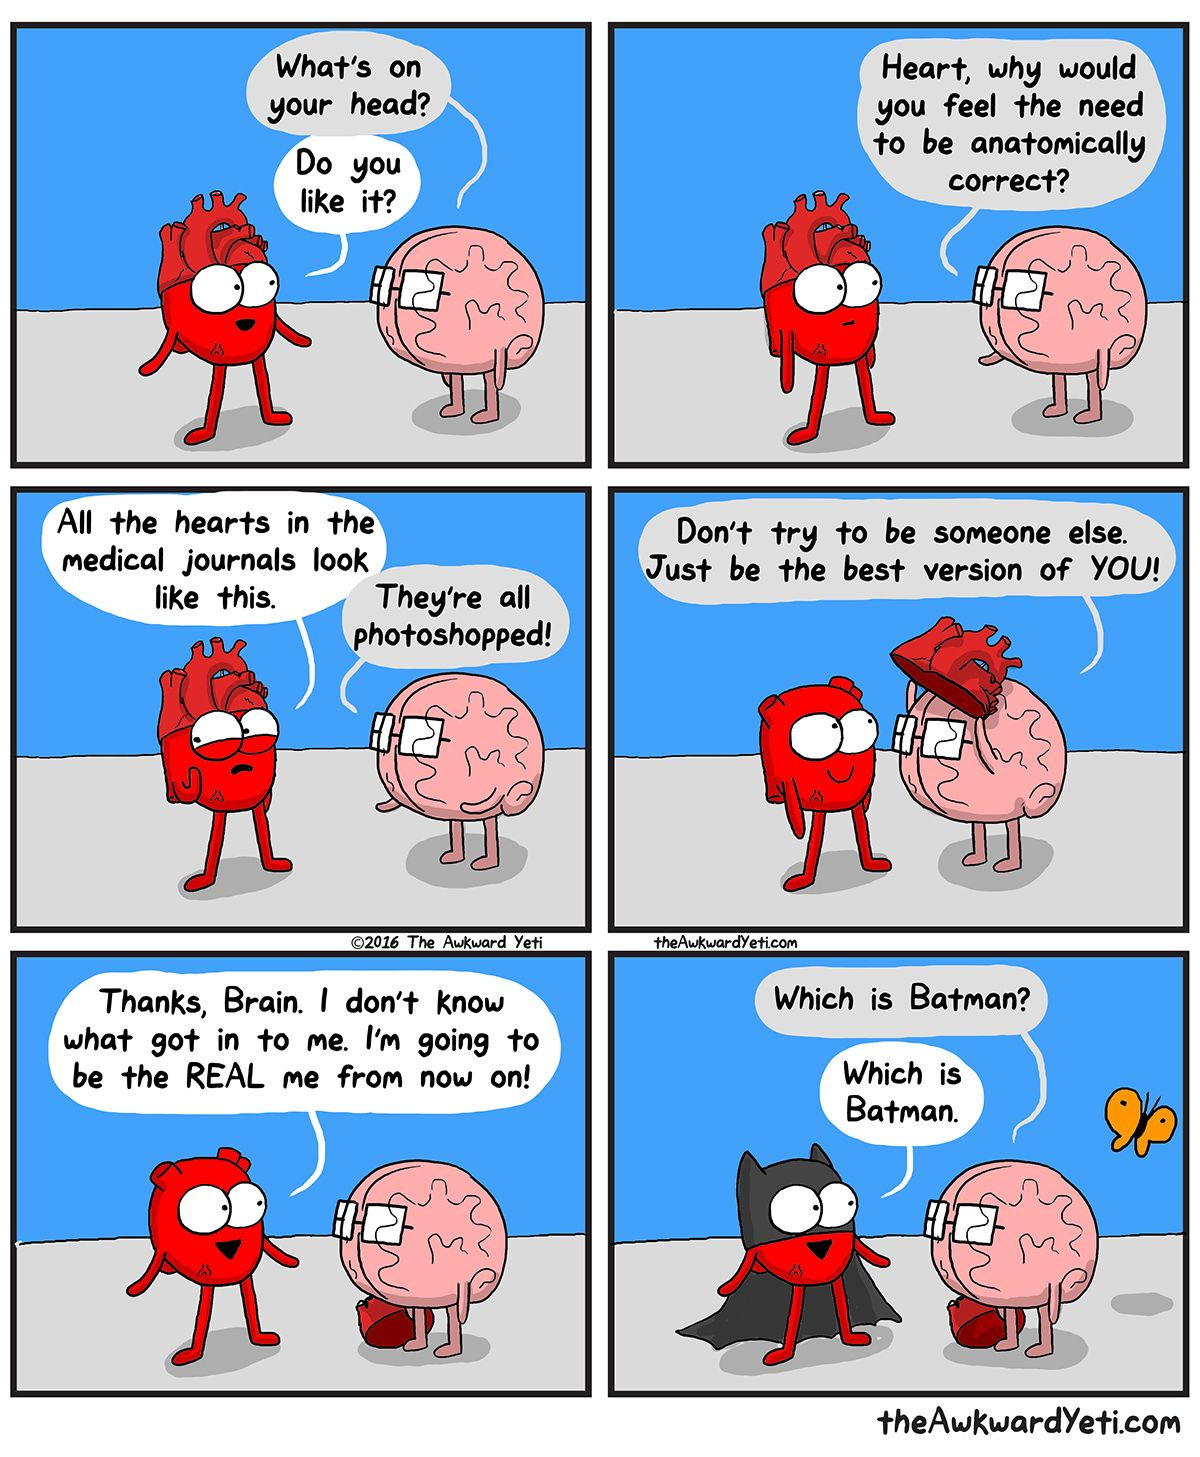 Awkward yeti image by Khira on Miscellaneous | Heart and brain comic, Funny  comics